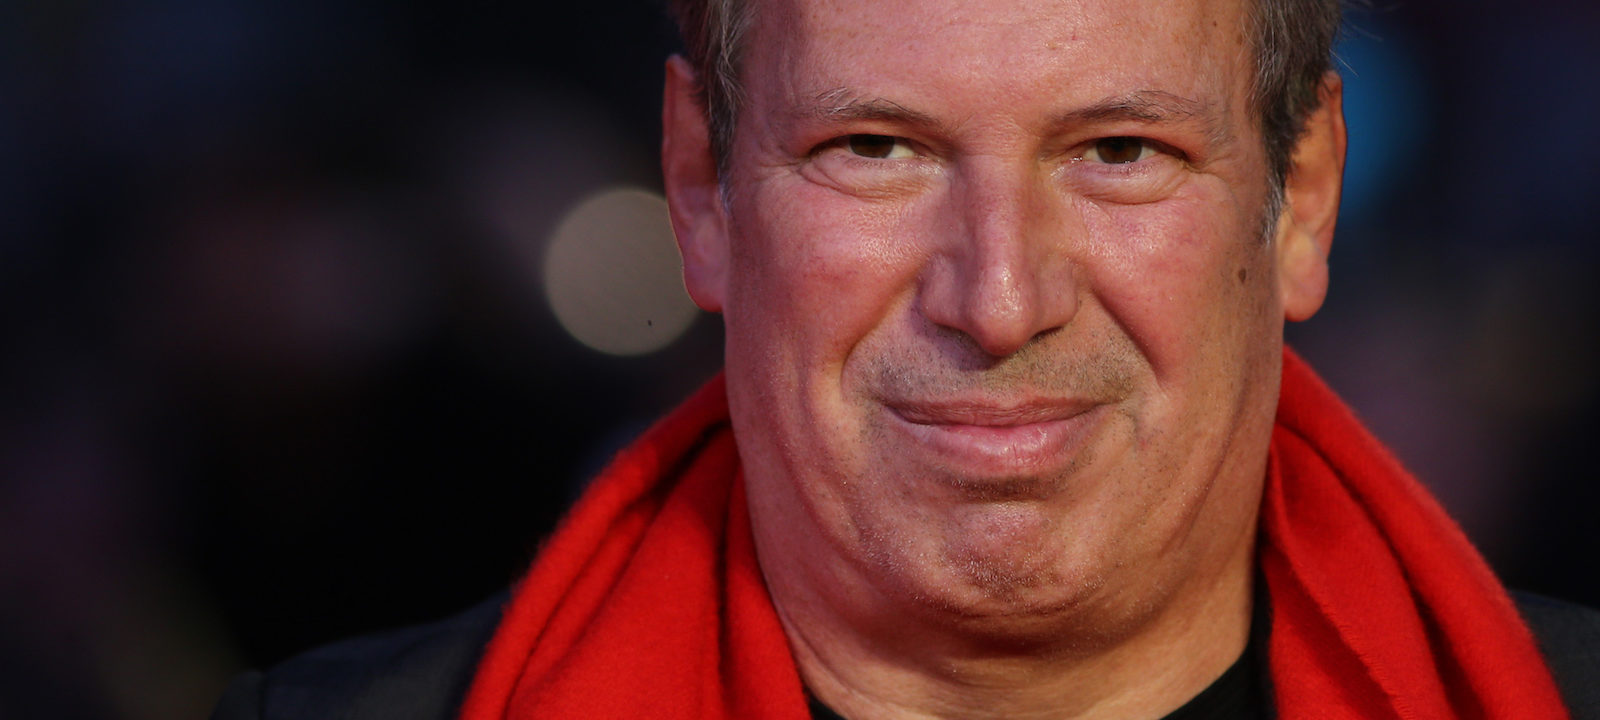 """German composer Hans Zimmer poses for a photograph after arriving to attend the European Premiere of the film """"Batman v Superman: Dawn of Justice"""", in central London on March 22, 2016."""